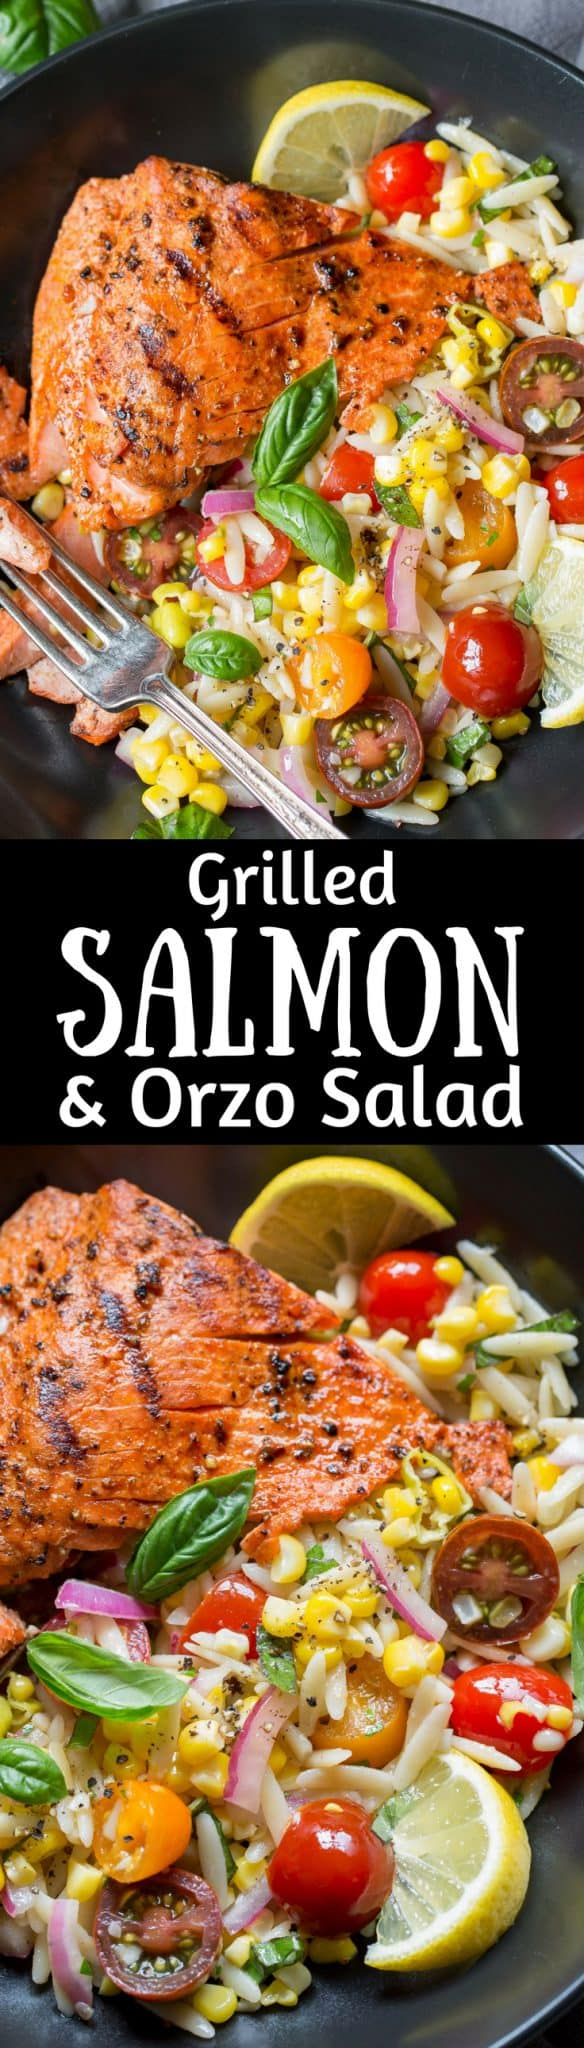 Grilled Salmon & Orzo Corn Salad ~ A light and refreshing orzo salad with fresh, sweet summer corn, tomatoes, basil, parsley, onion and a lemon vinaigrette served with a tender grilled wild caught salmon fillet. www.savingdessert.com